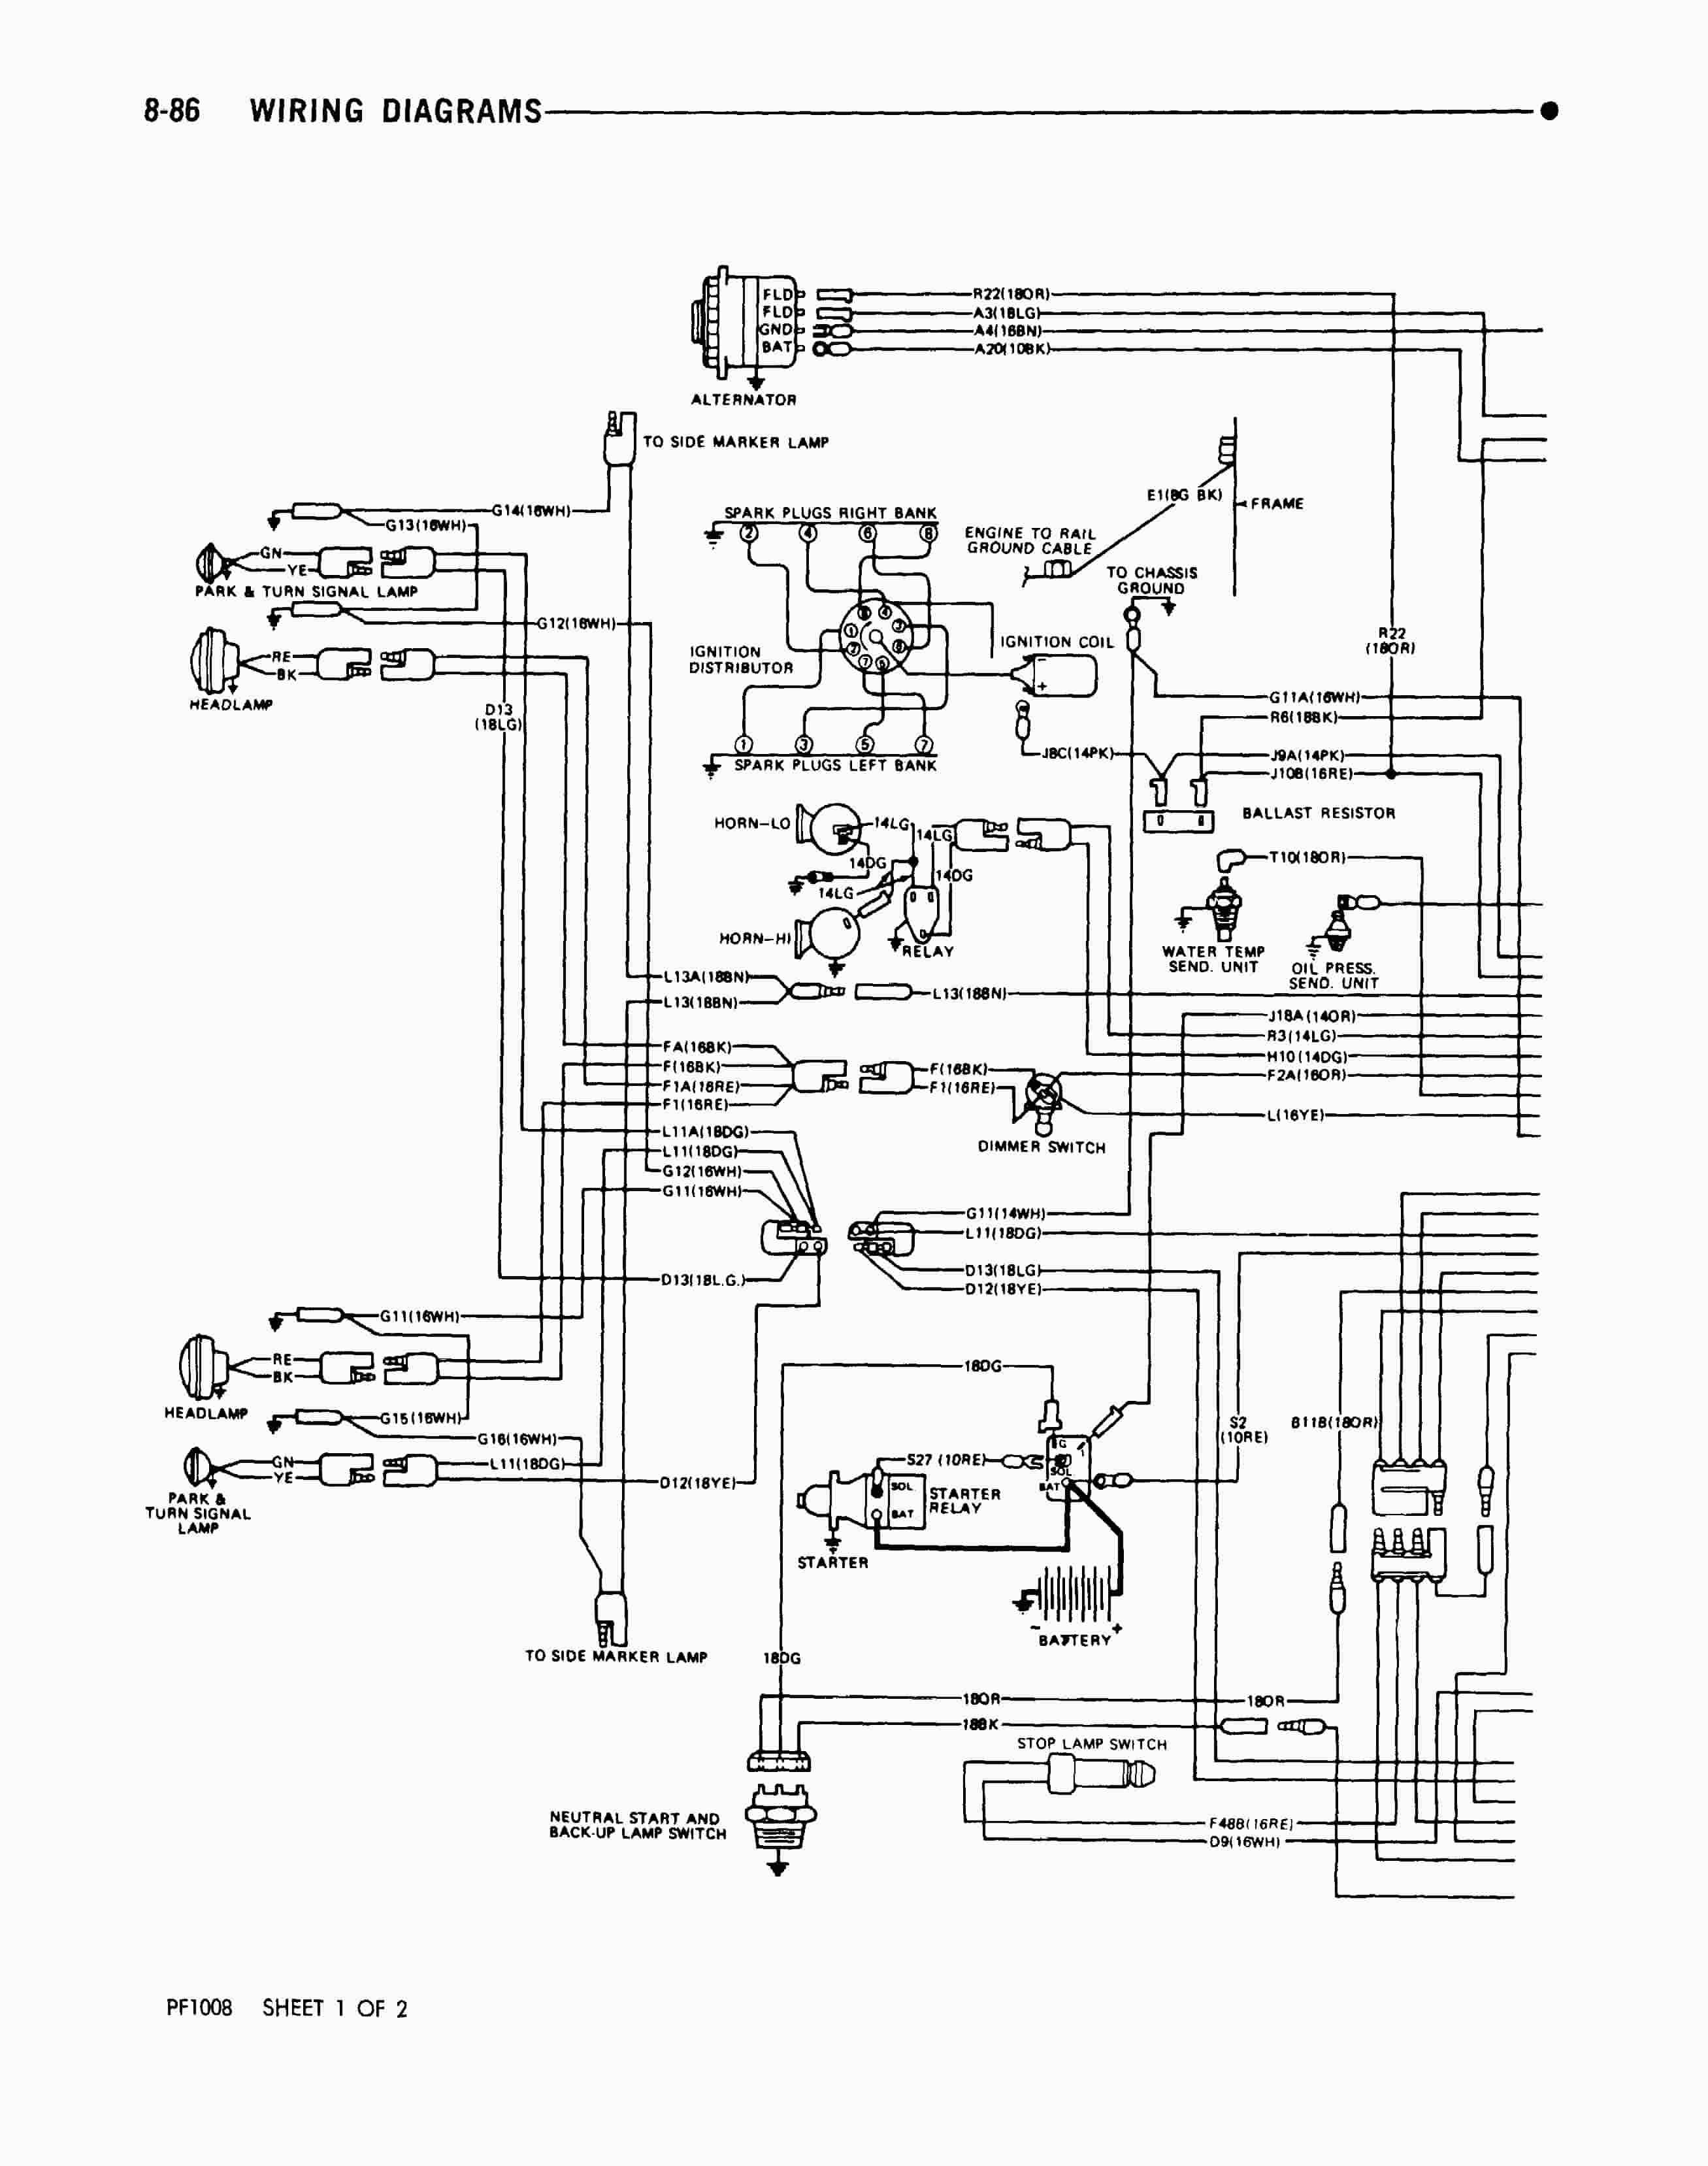 [DIAGRAM_5FD]  DIAGRAM] 1996 Chevy P30 Motorhome Wiring Diagram FULL Version HD Quality  Wiring Diagram - VENNDIAGRAMONLINE.NUITDEBOUTAIX.FR | Winnebago Ac Wiring |  | venndiagramonline.nuitdeboutaix.fr